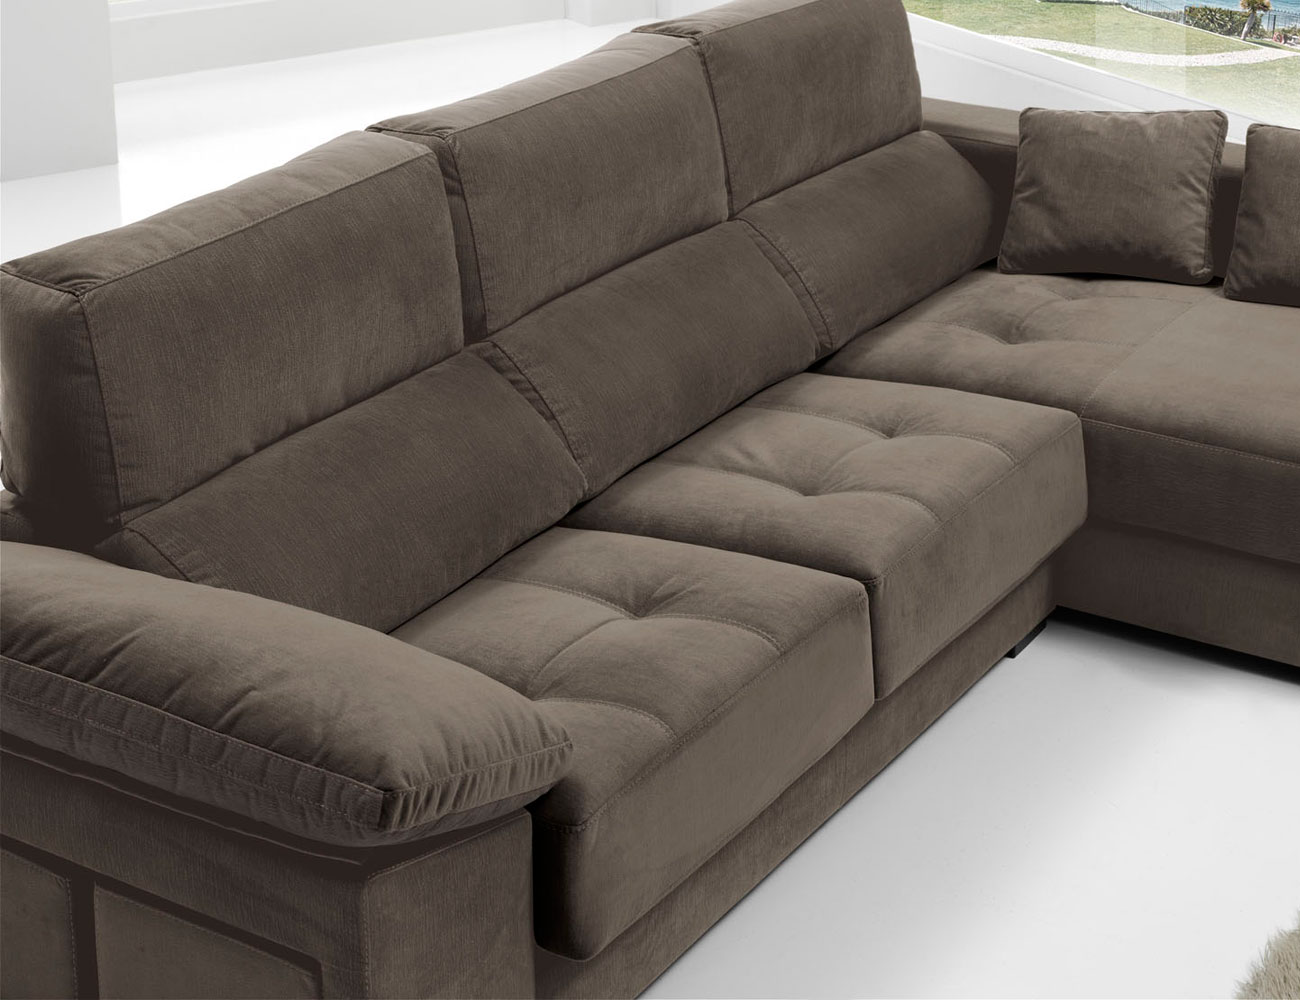 Sofa chaiselongue anti manchas bering pouf 283